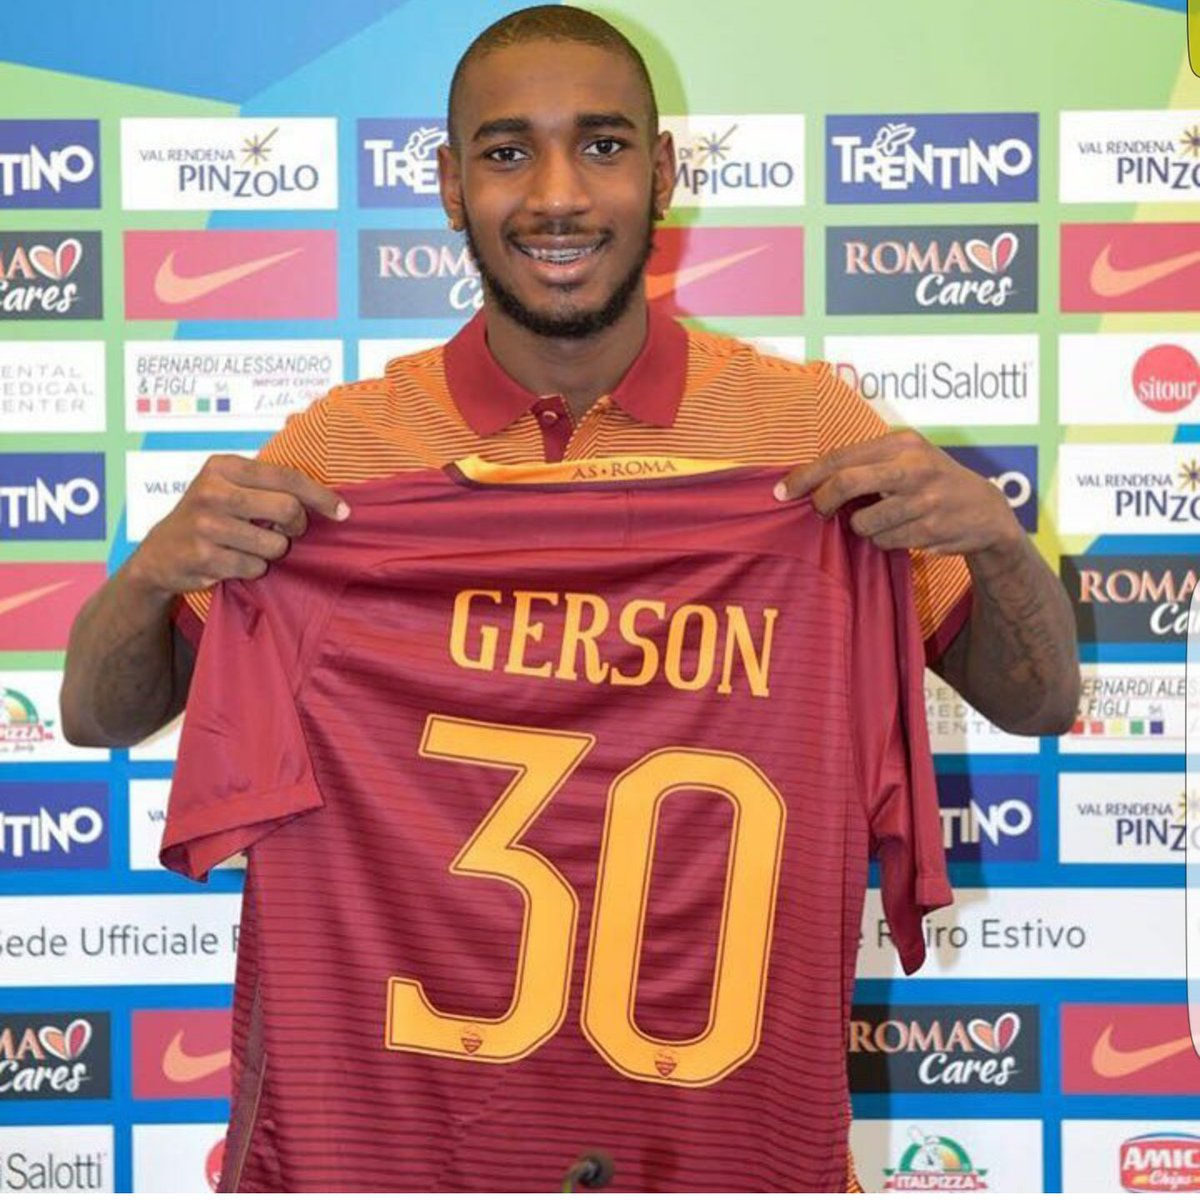 "Mark Tluszcz on Twitter ""Our player Gerson Santos now at Roma"